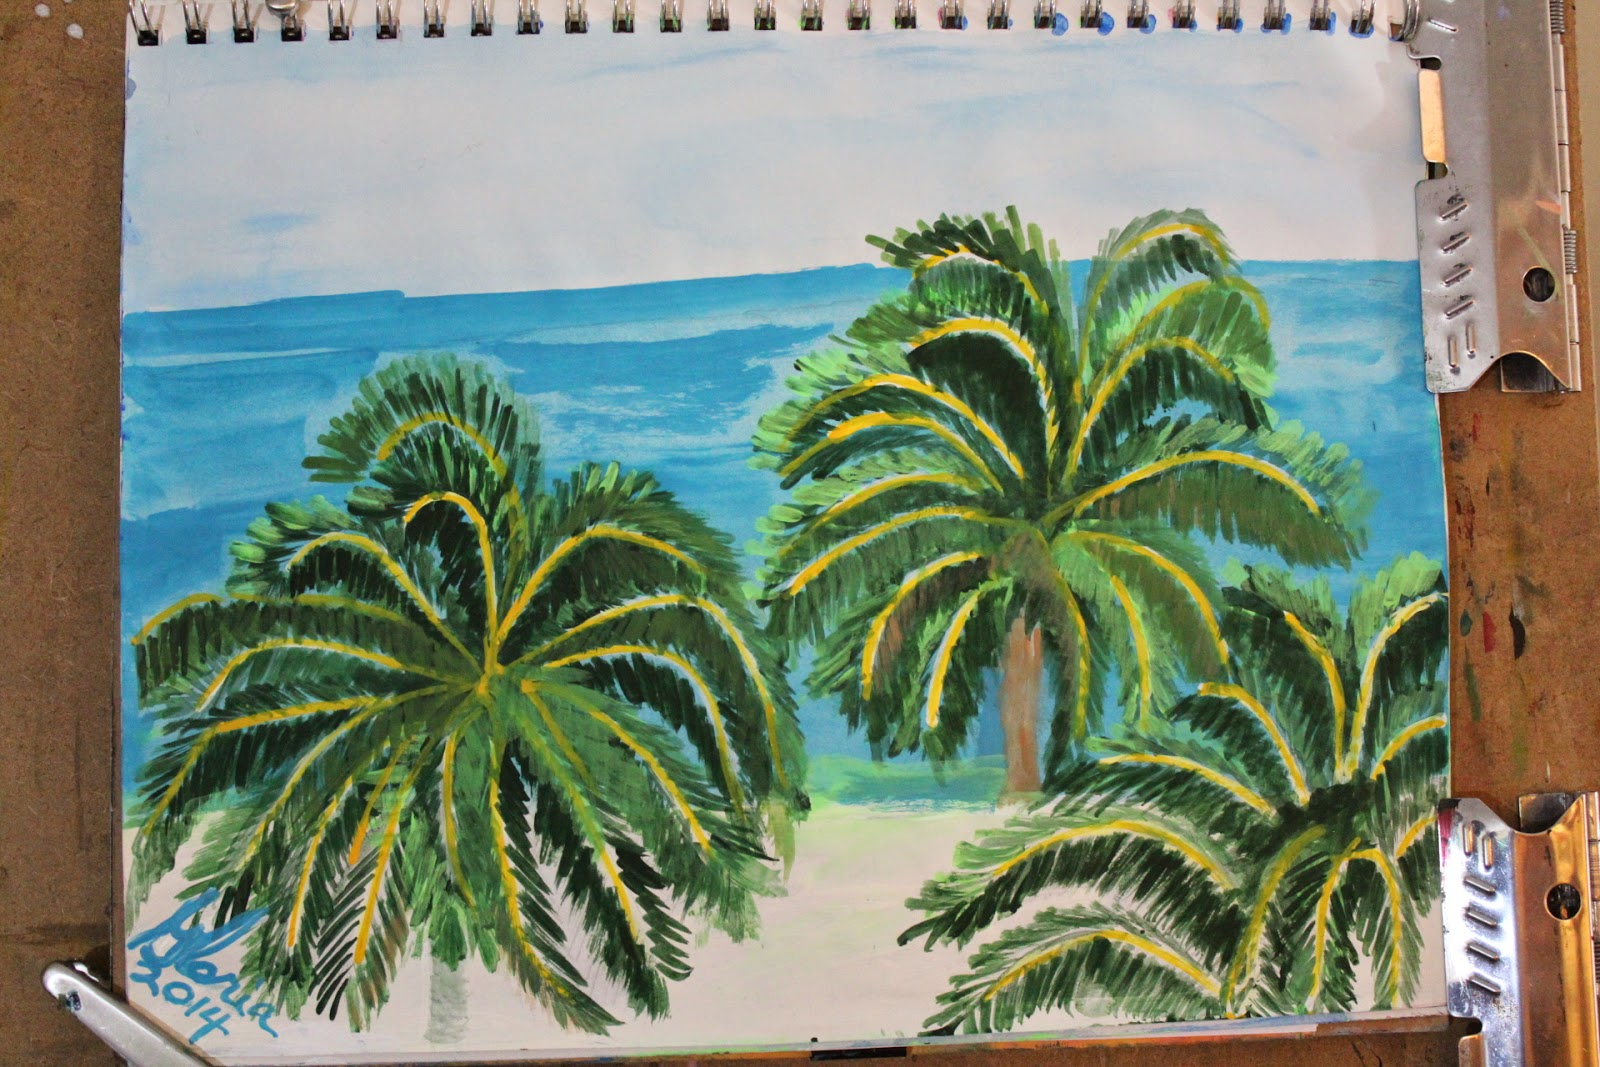 South Seas Island sketch by Gloria Poole / Gloria / gloriapoole of Missouri; 30 April 2014